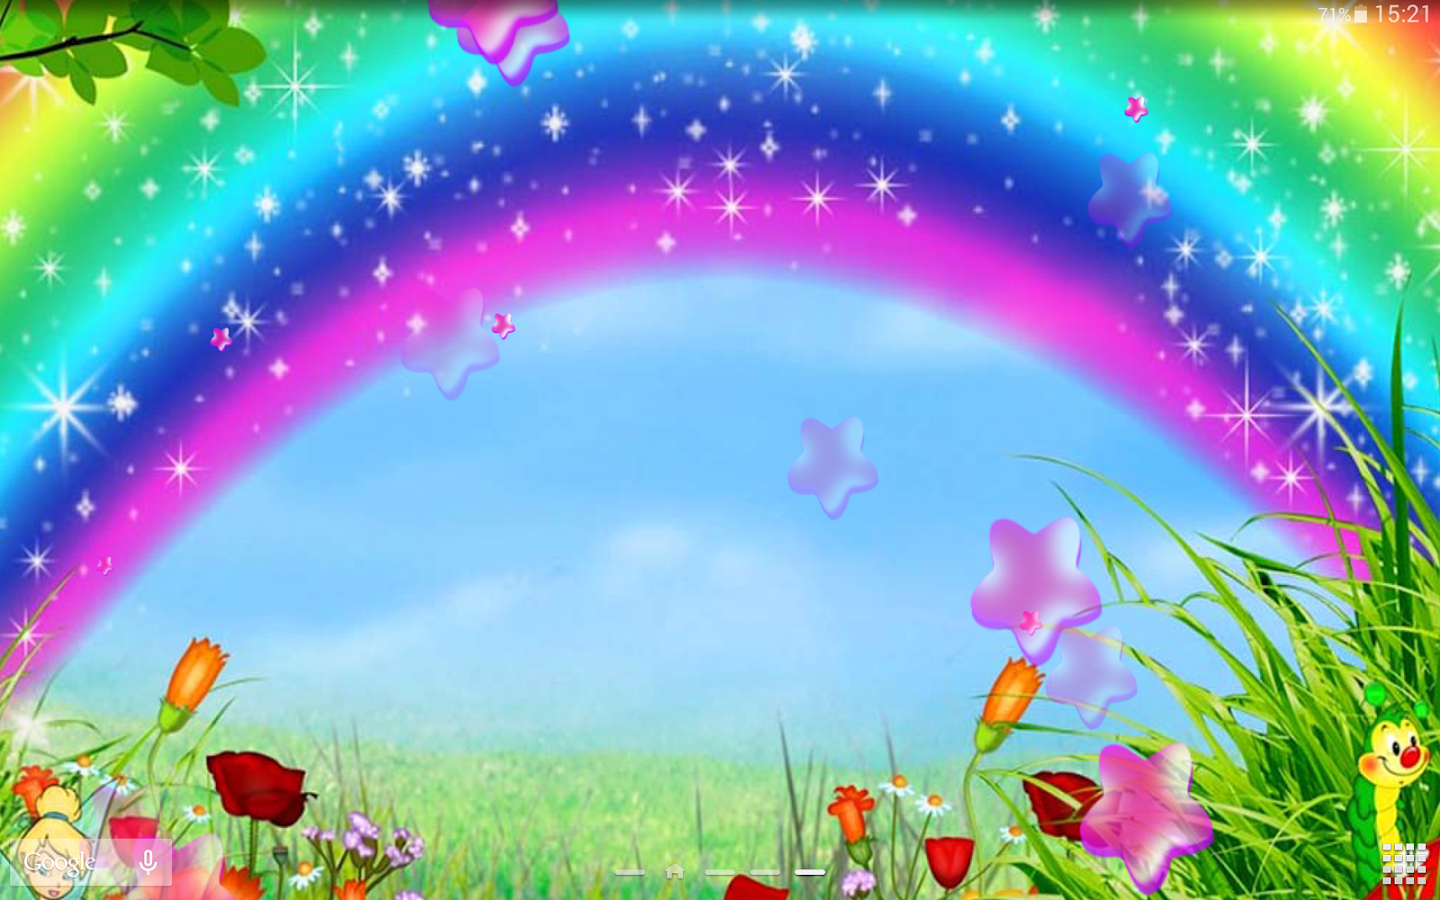 Cute Rainbow Live Wallpaper Android Apps on Google Play